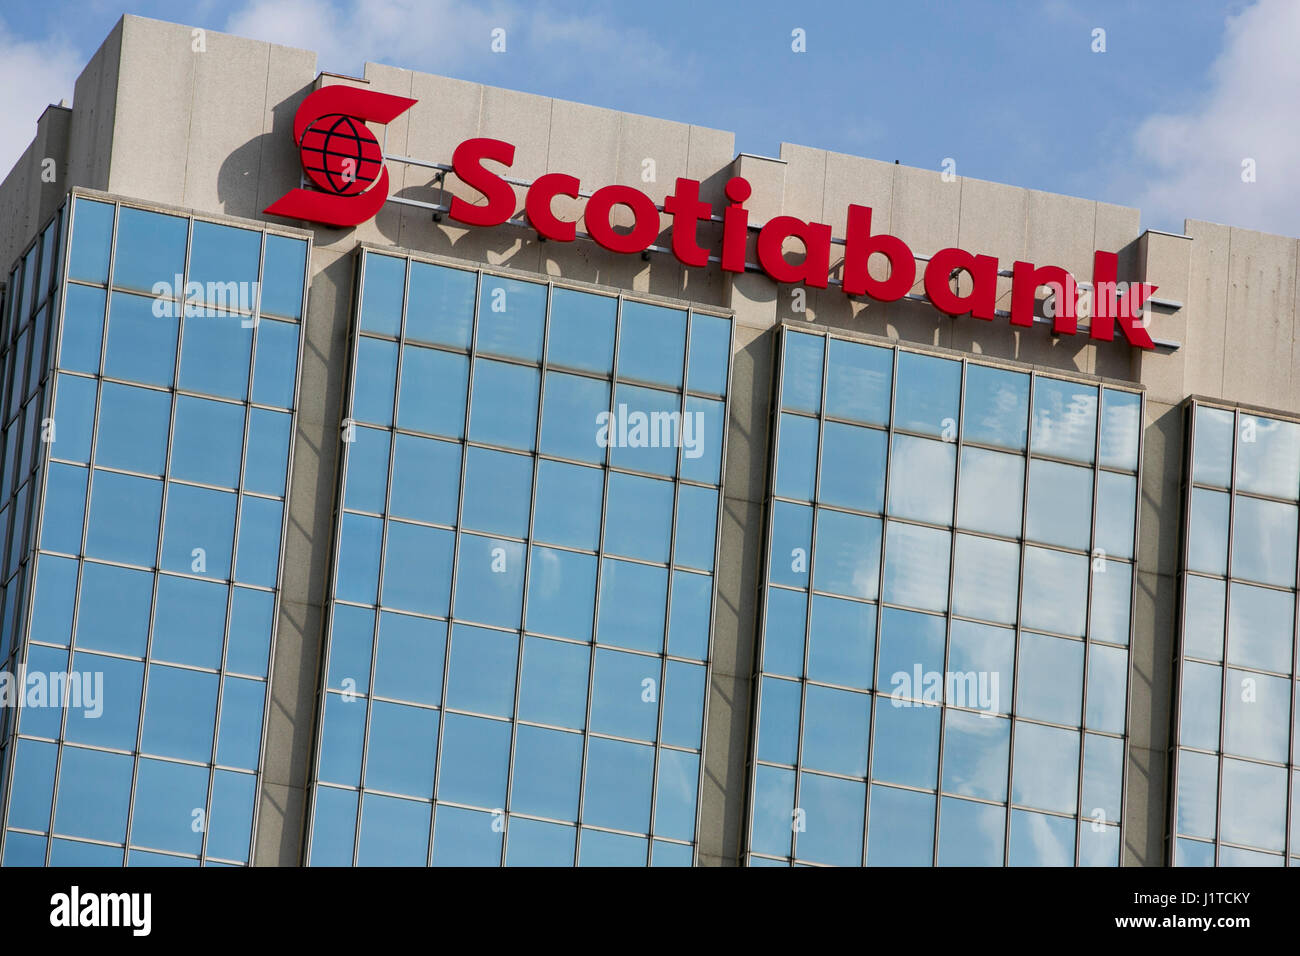 Scotiabank: Scotiabank Stock Photos & Scotiabank Stock Images